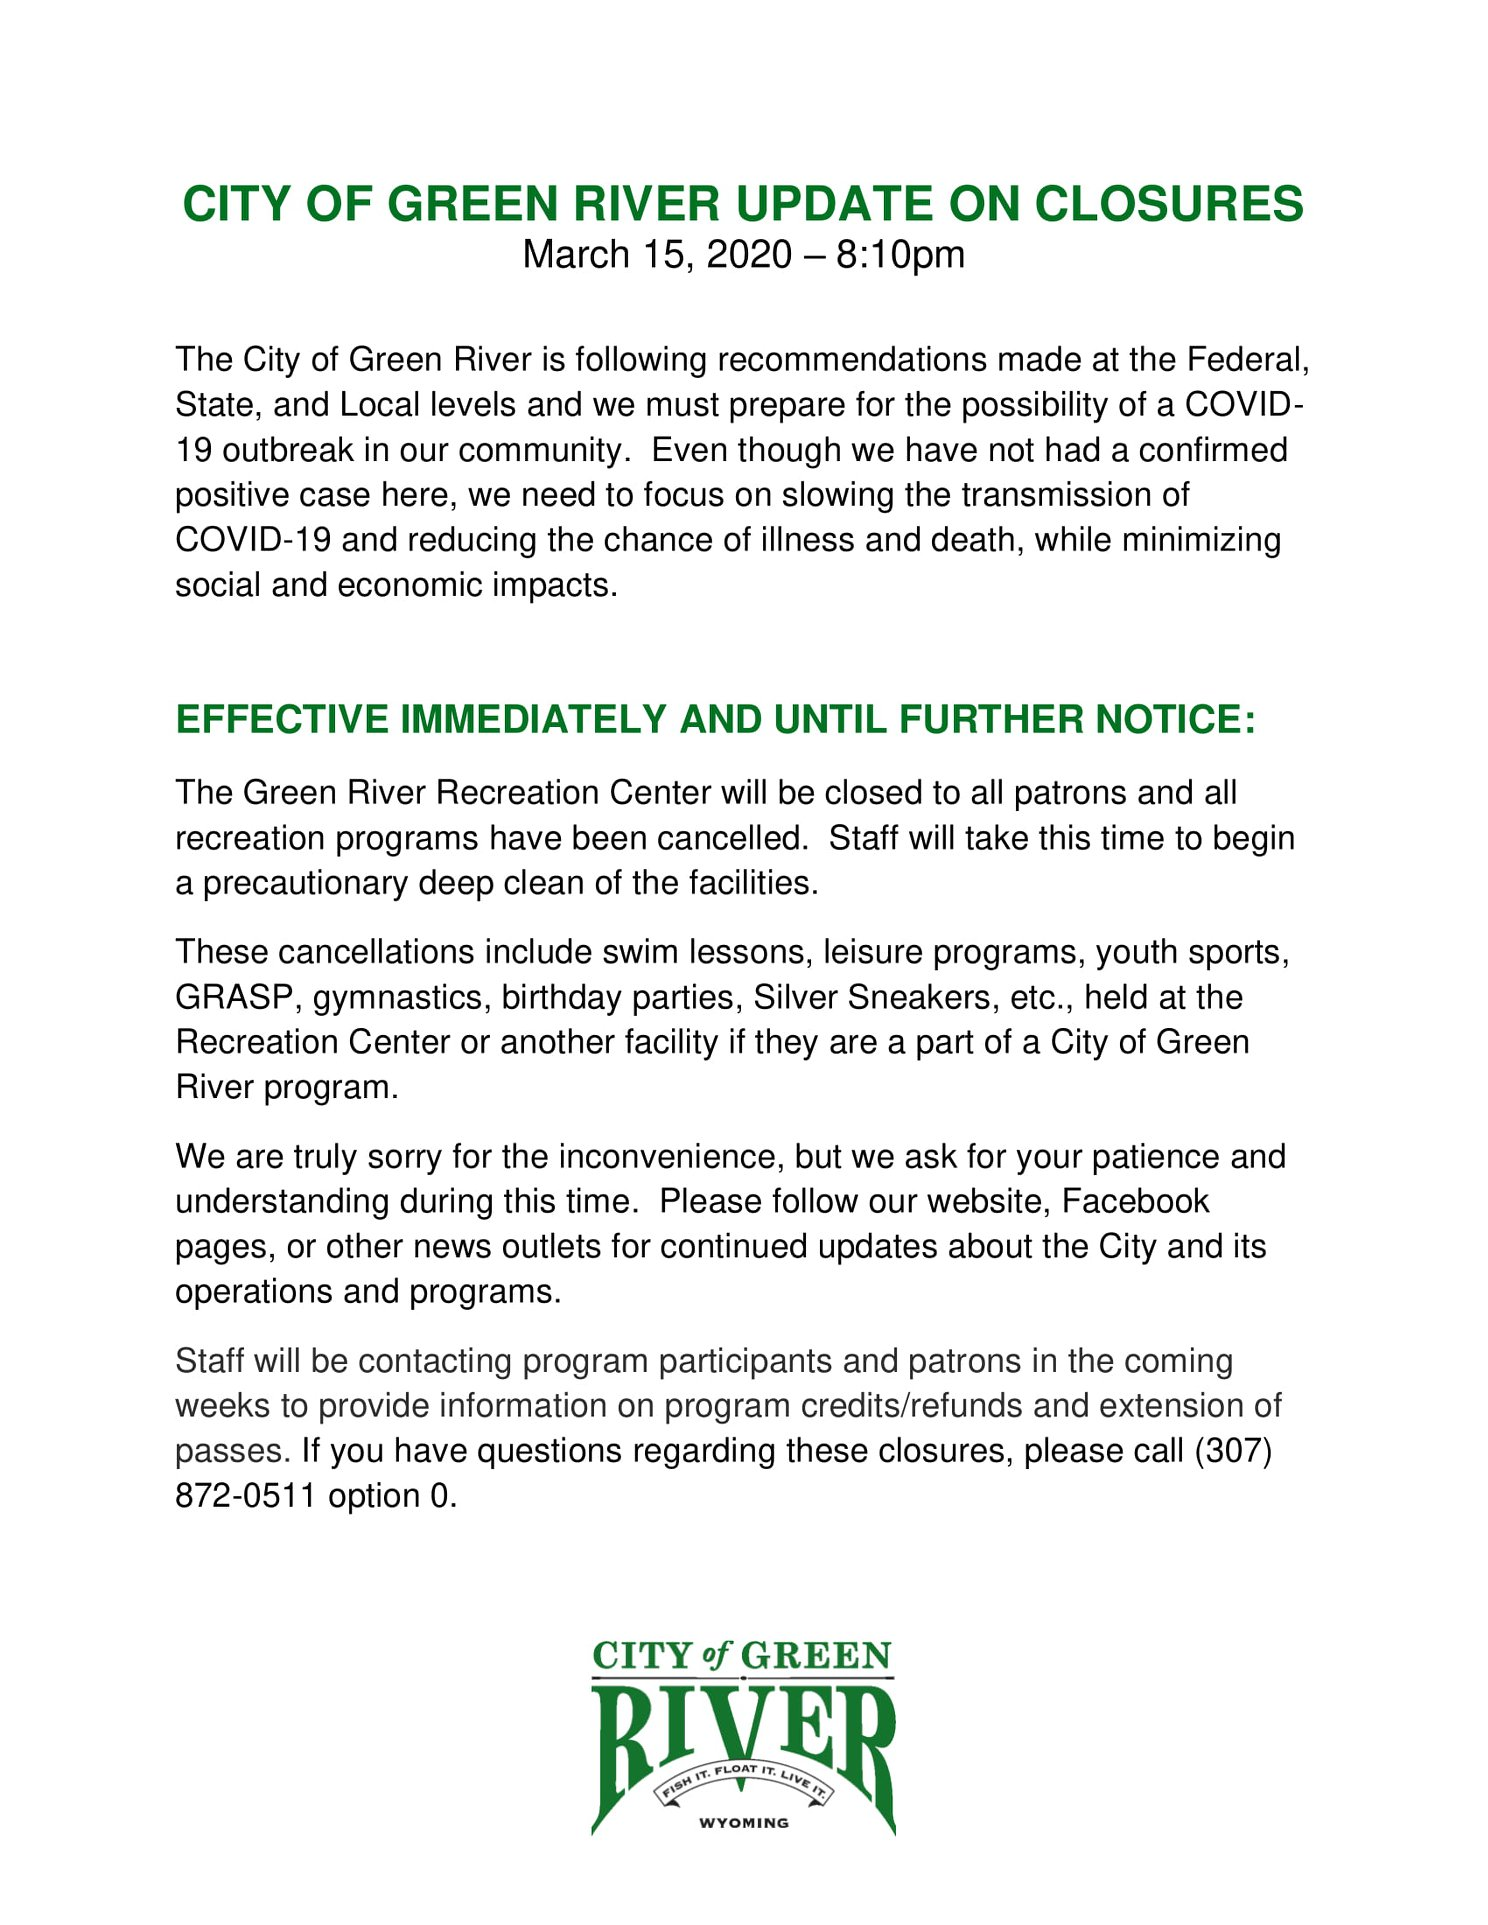 City of Green River Update on Closures